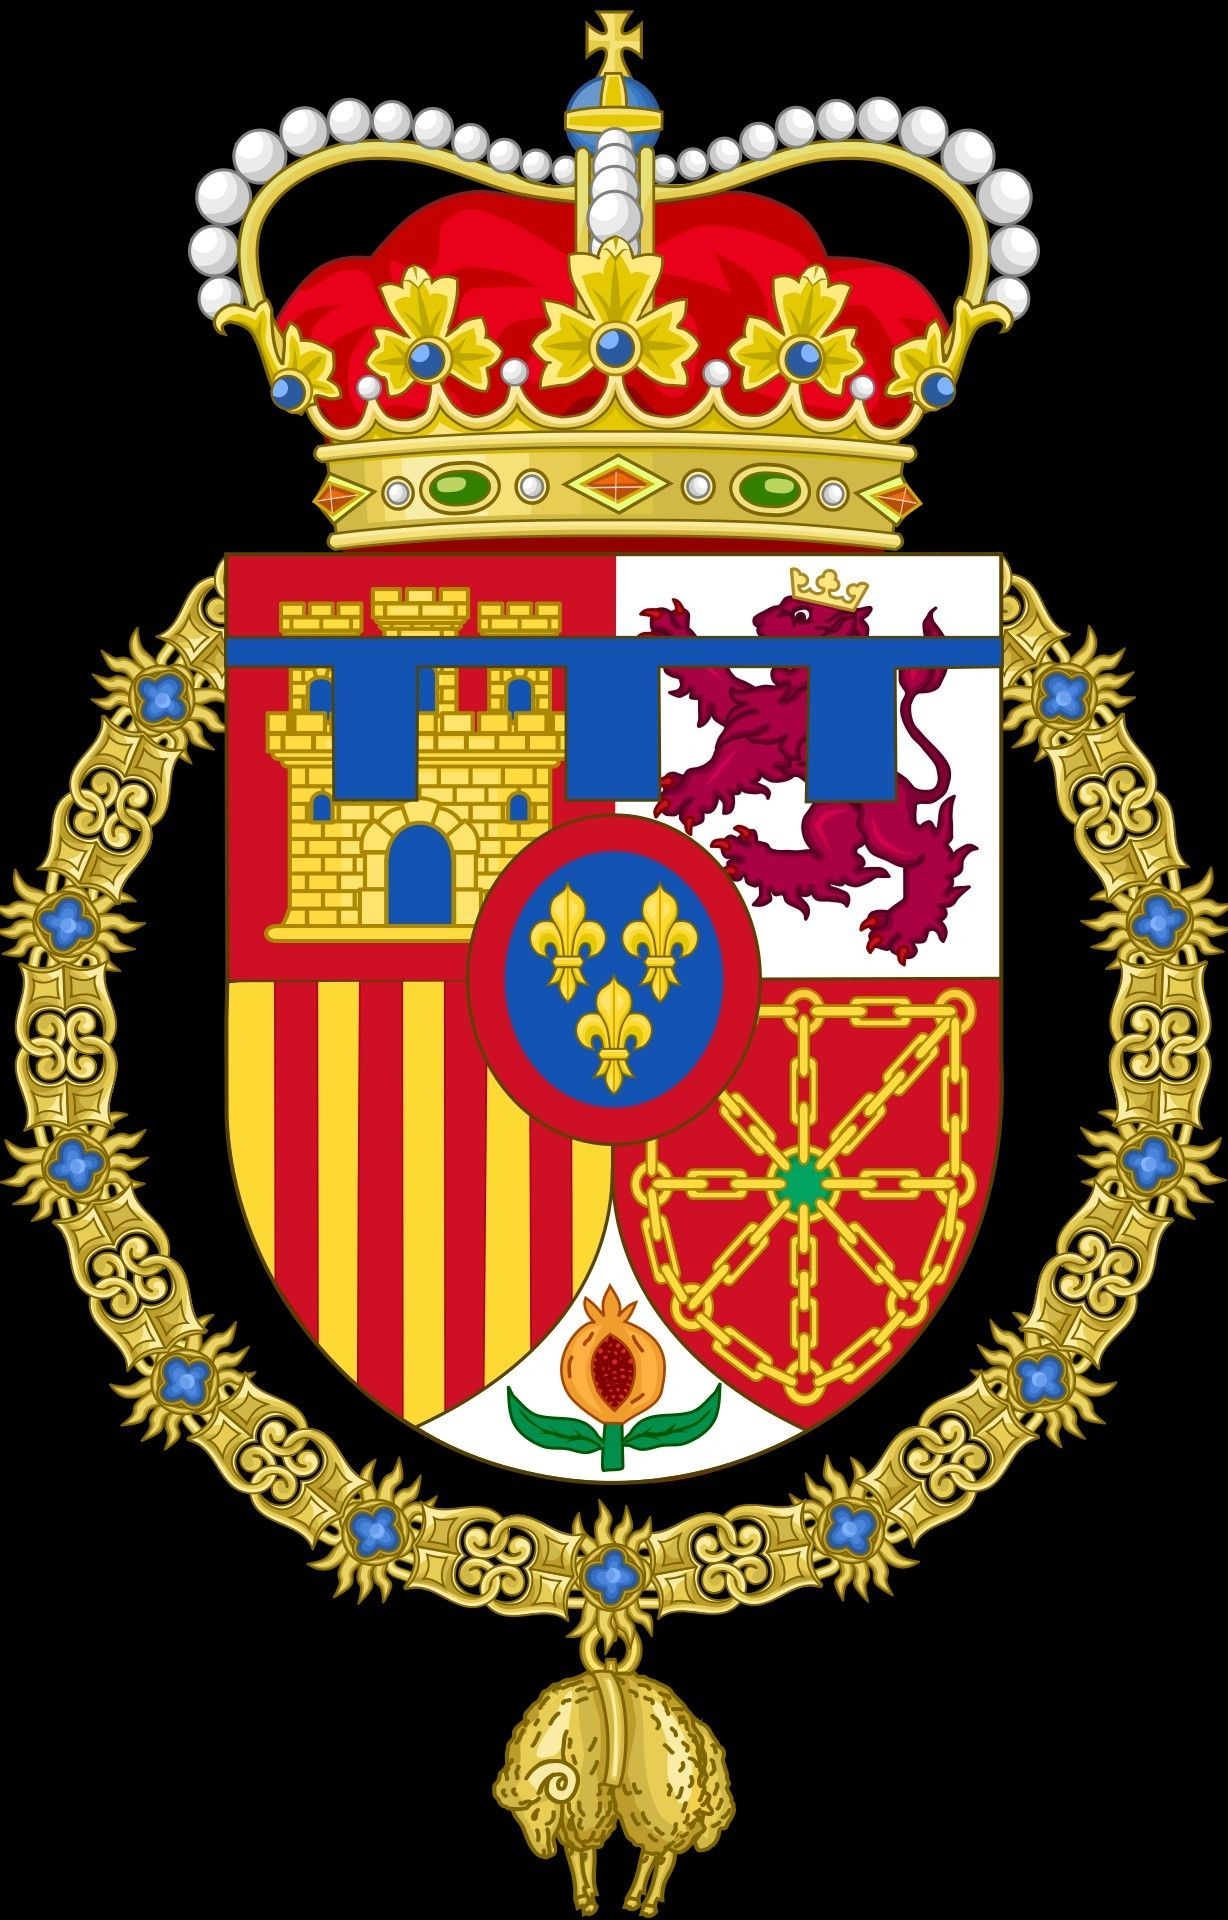 Princesa De Asturias Coat Of Arms Heraldry Spanish Royal Family